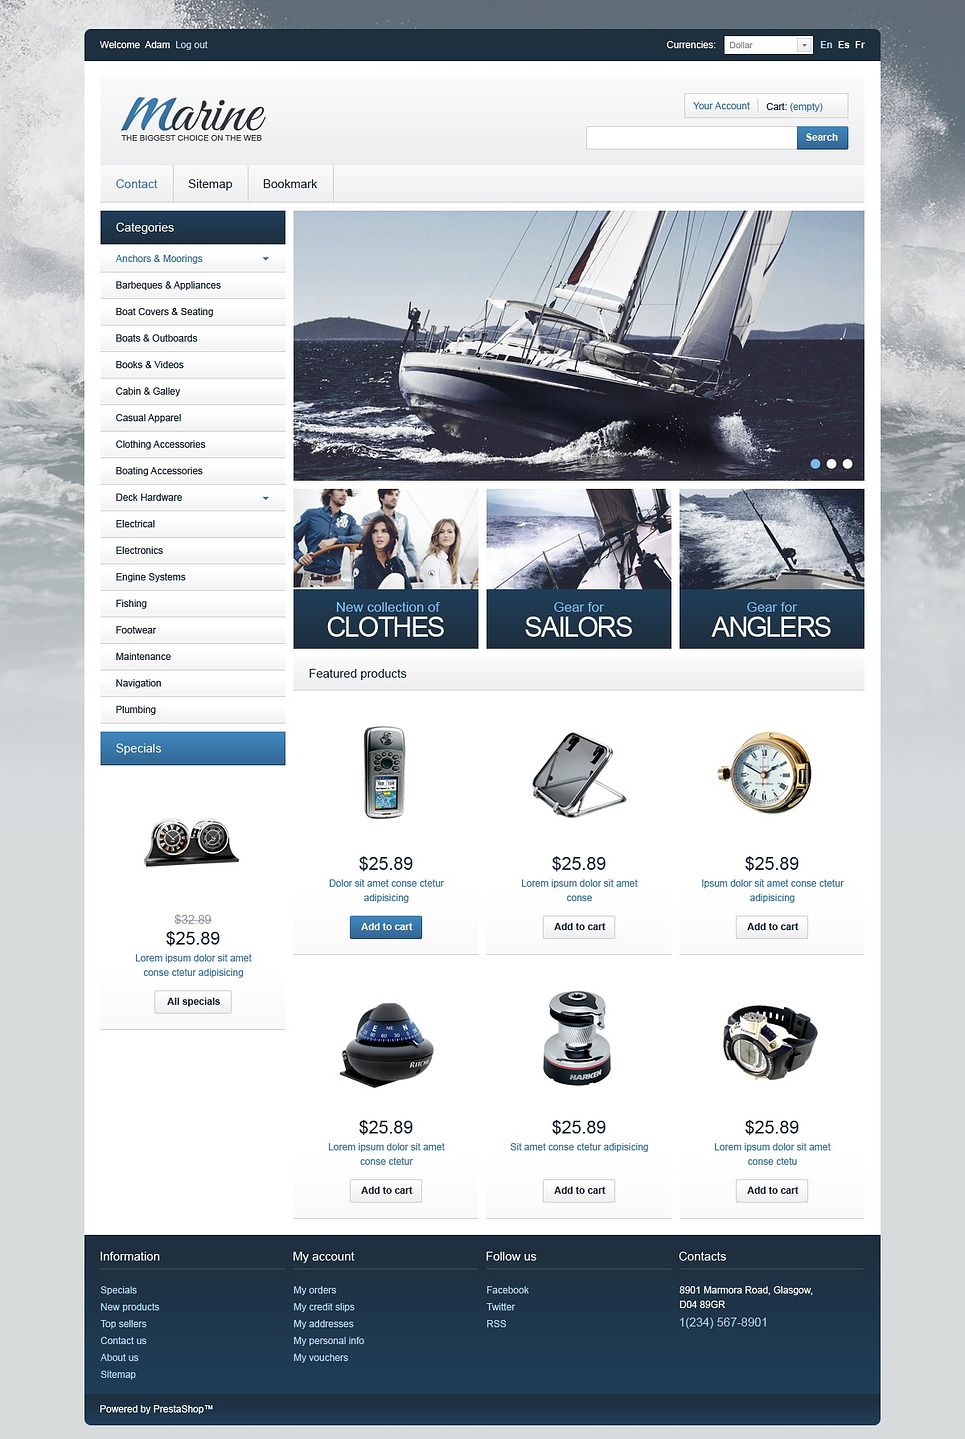 Marine Equipment Shop